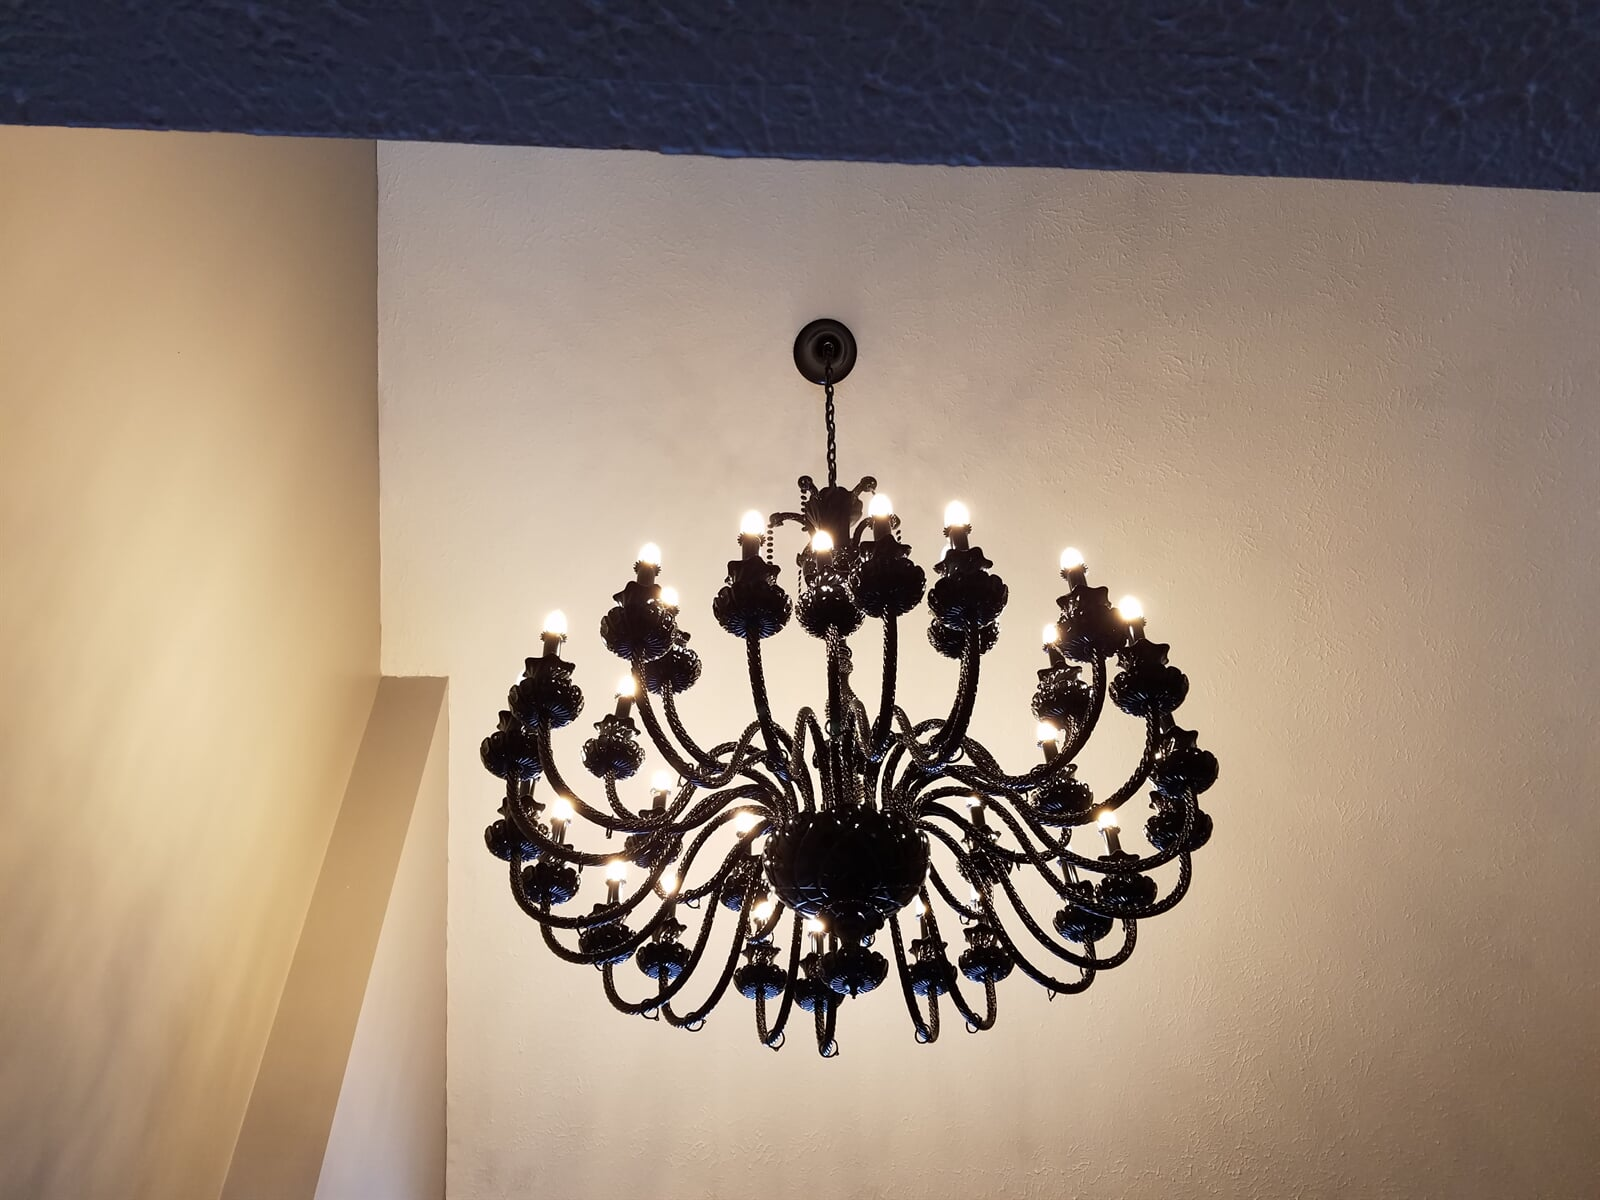 Black Chandelier installed by RS Home Repair Services featuring 30 Individual Lights